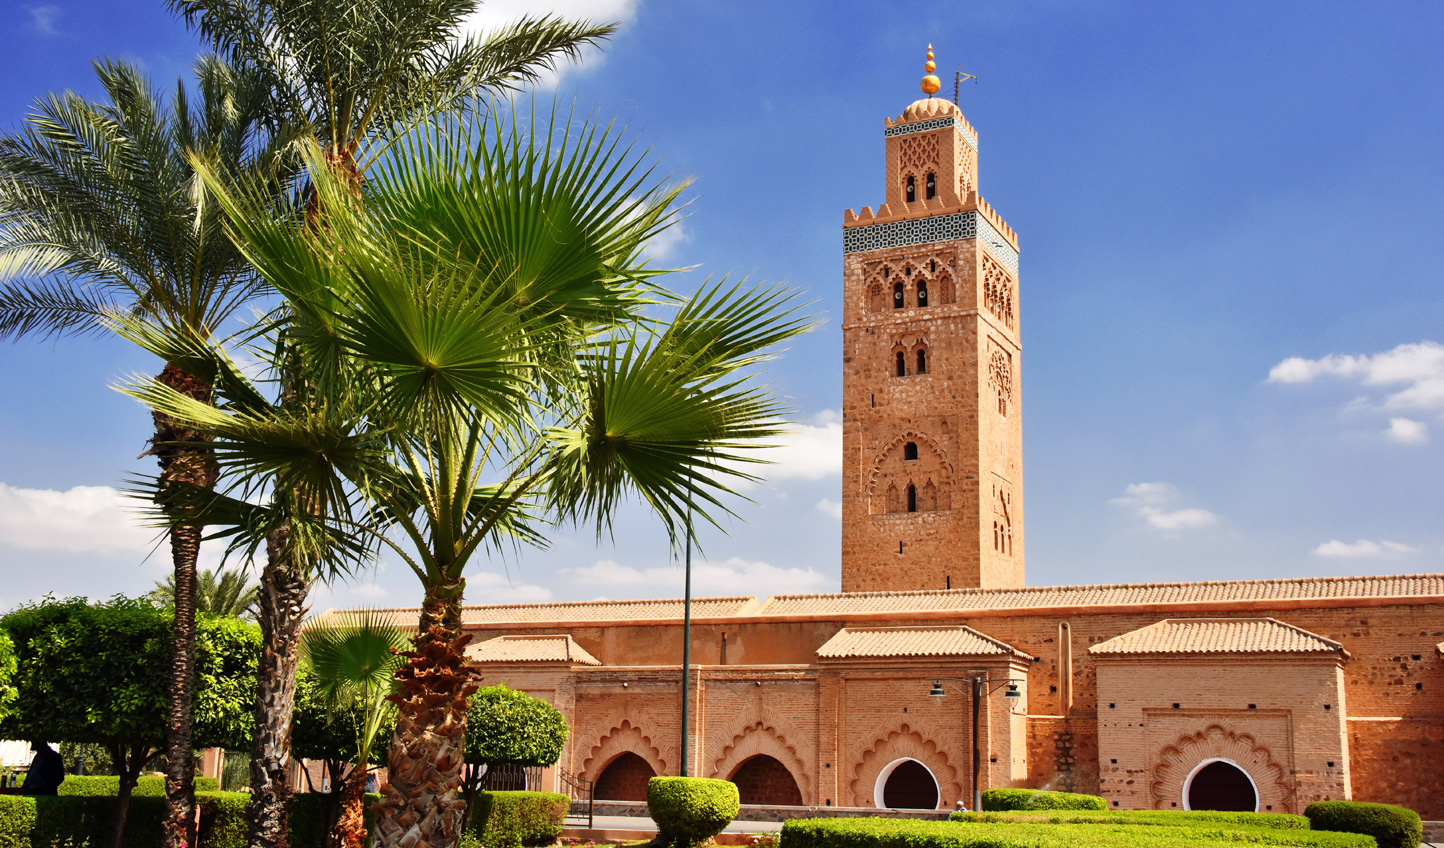 Watch as city life shifts around the Koutoubia Mosque